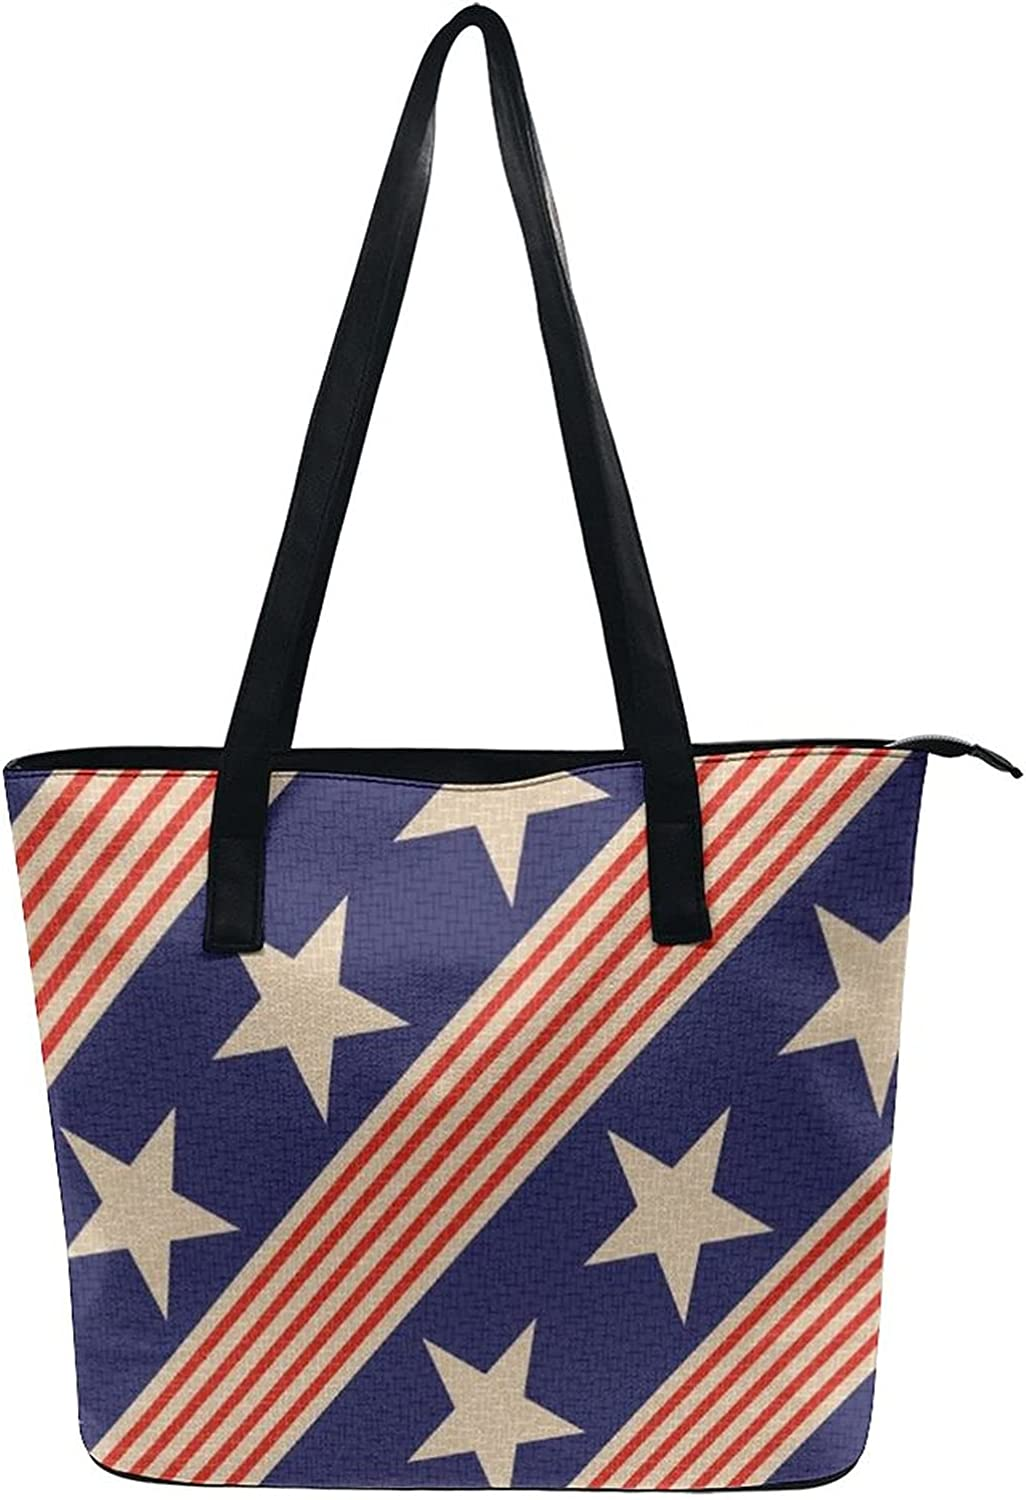 Tote Satchel Bag Shoulder Inventory cleanup selling sale Beach Bags Memphis Mall Shopp Lady For Women Casual